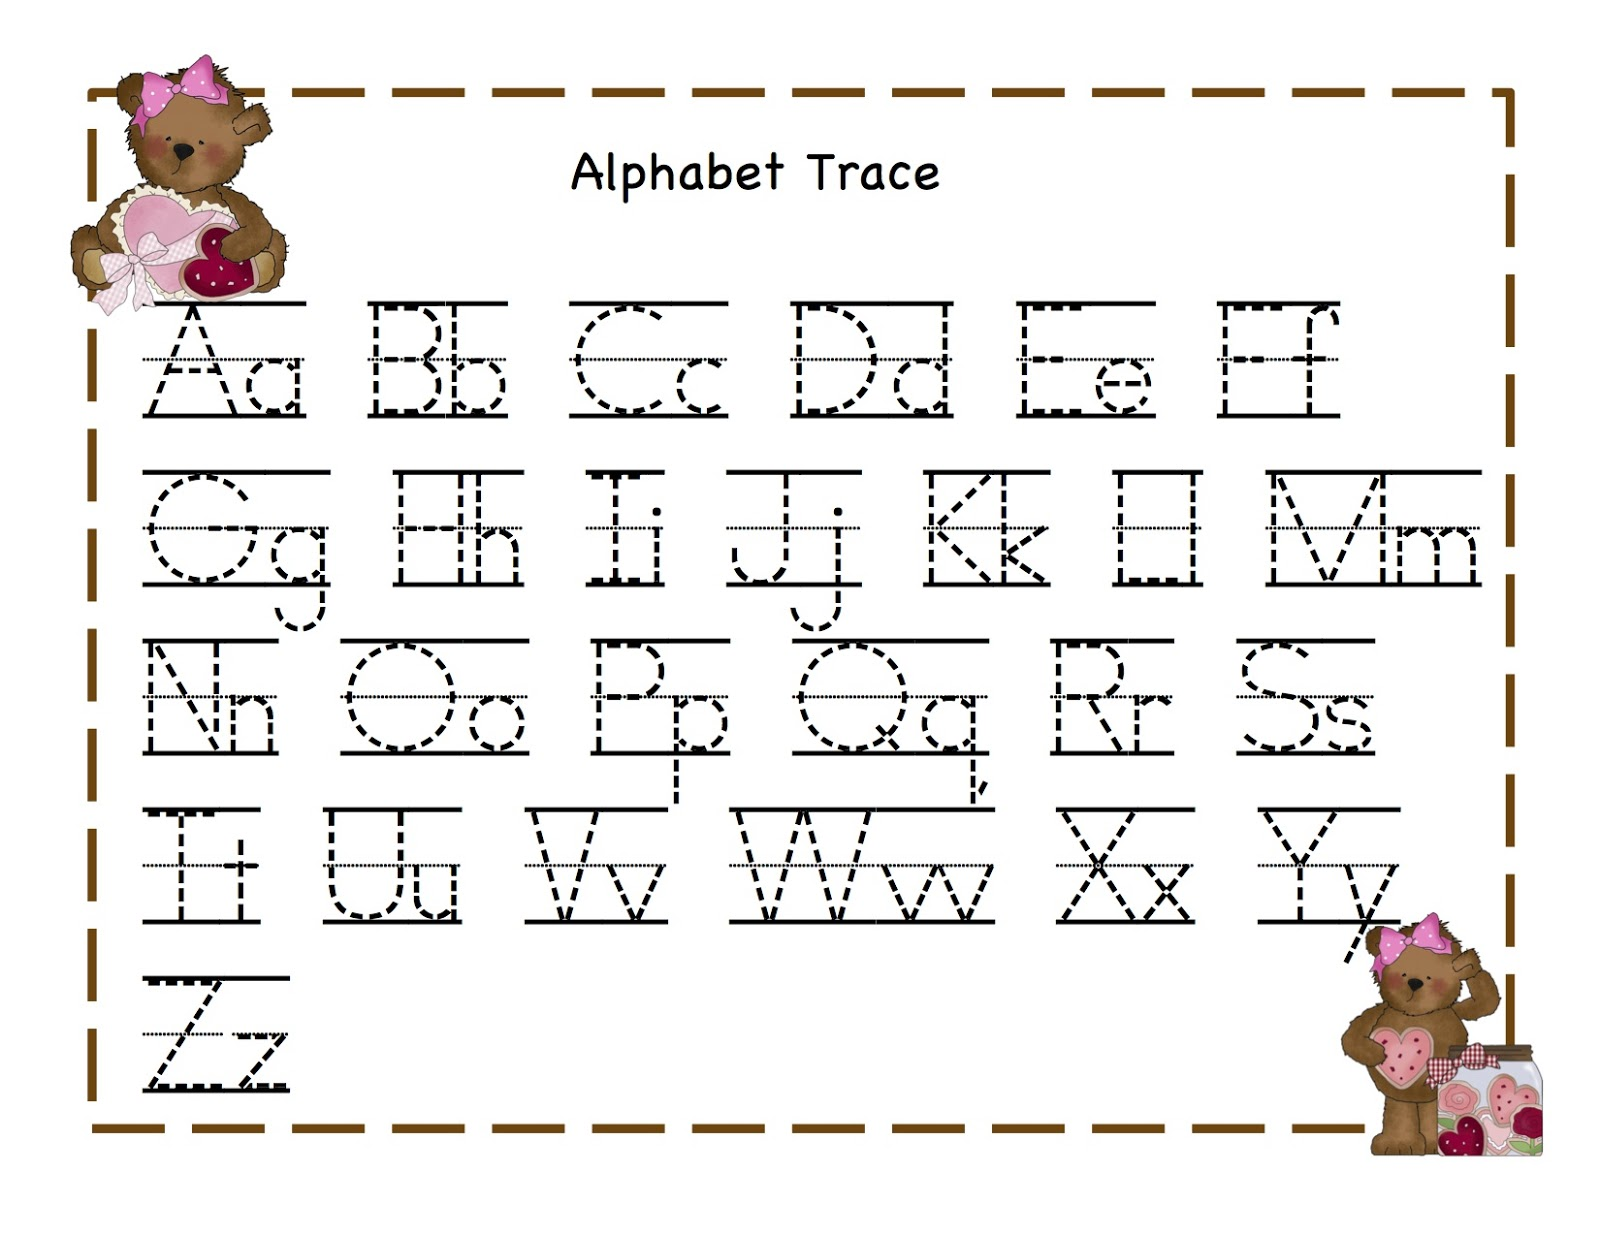 Free Worksheet Free Traceable Alphabet Worksheets alphabet tracing templates letter 7 worksheets free printable letters on abc coloring templates